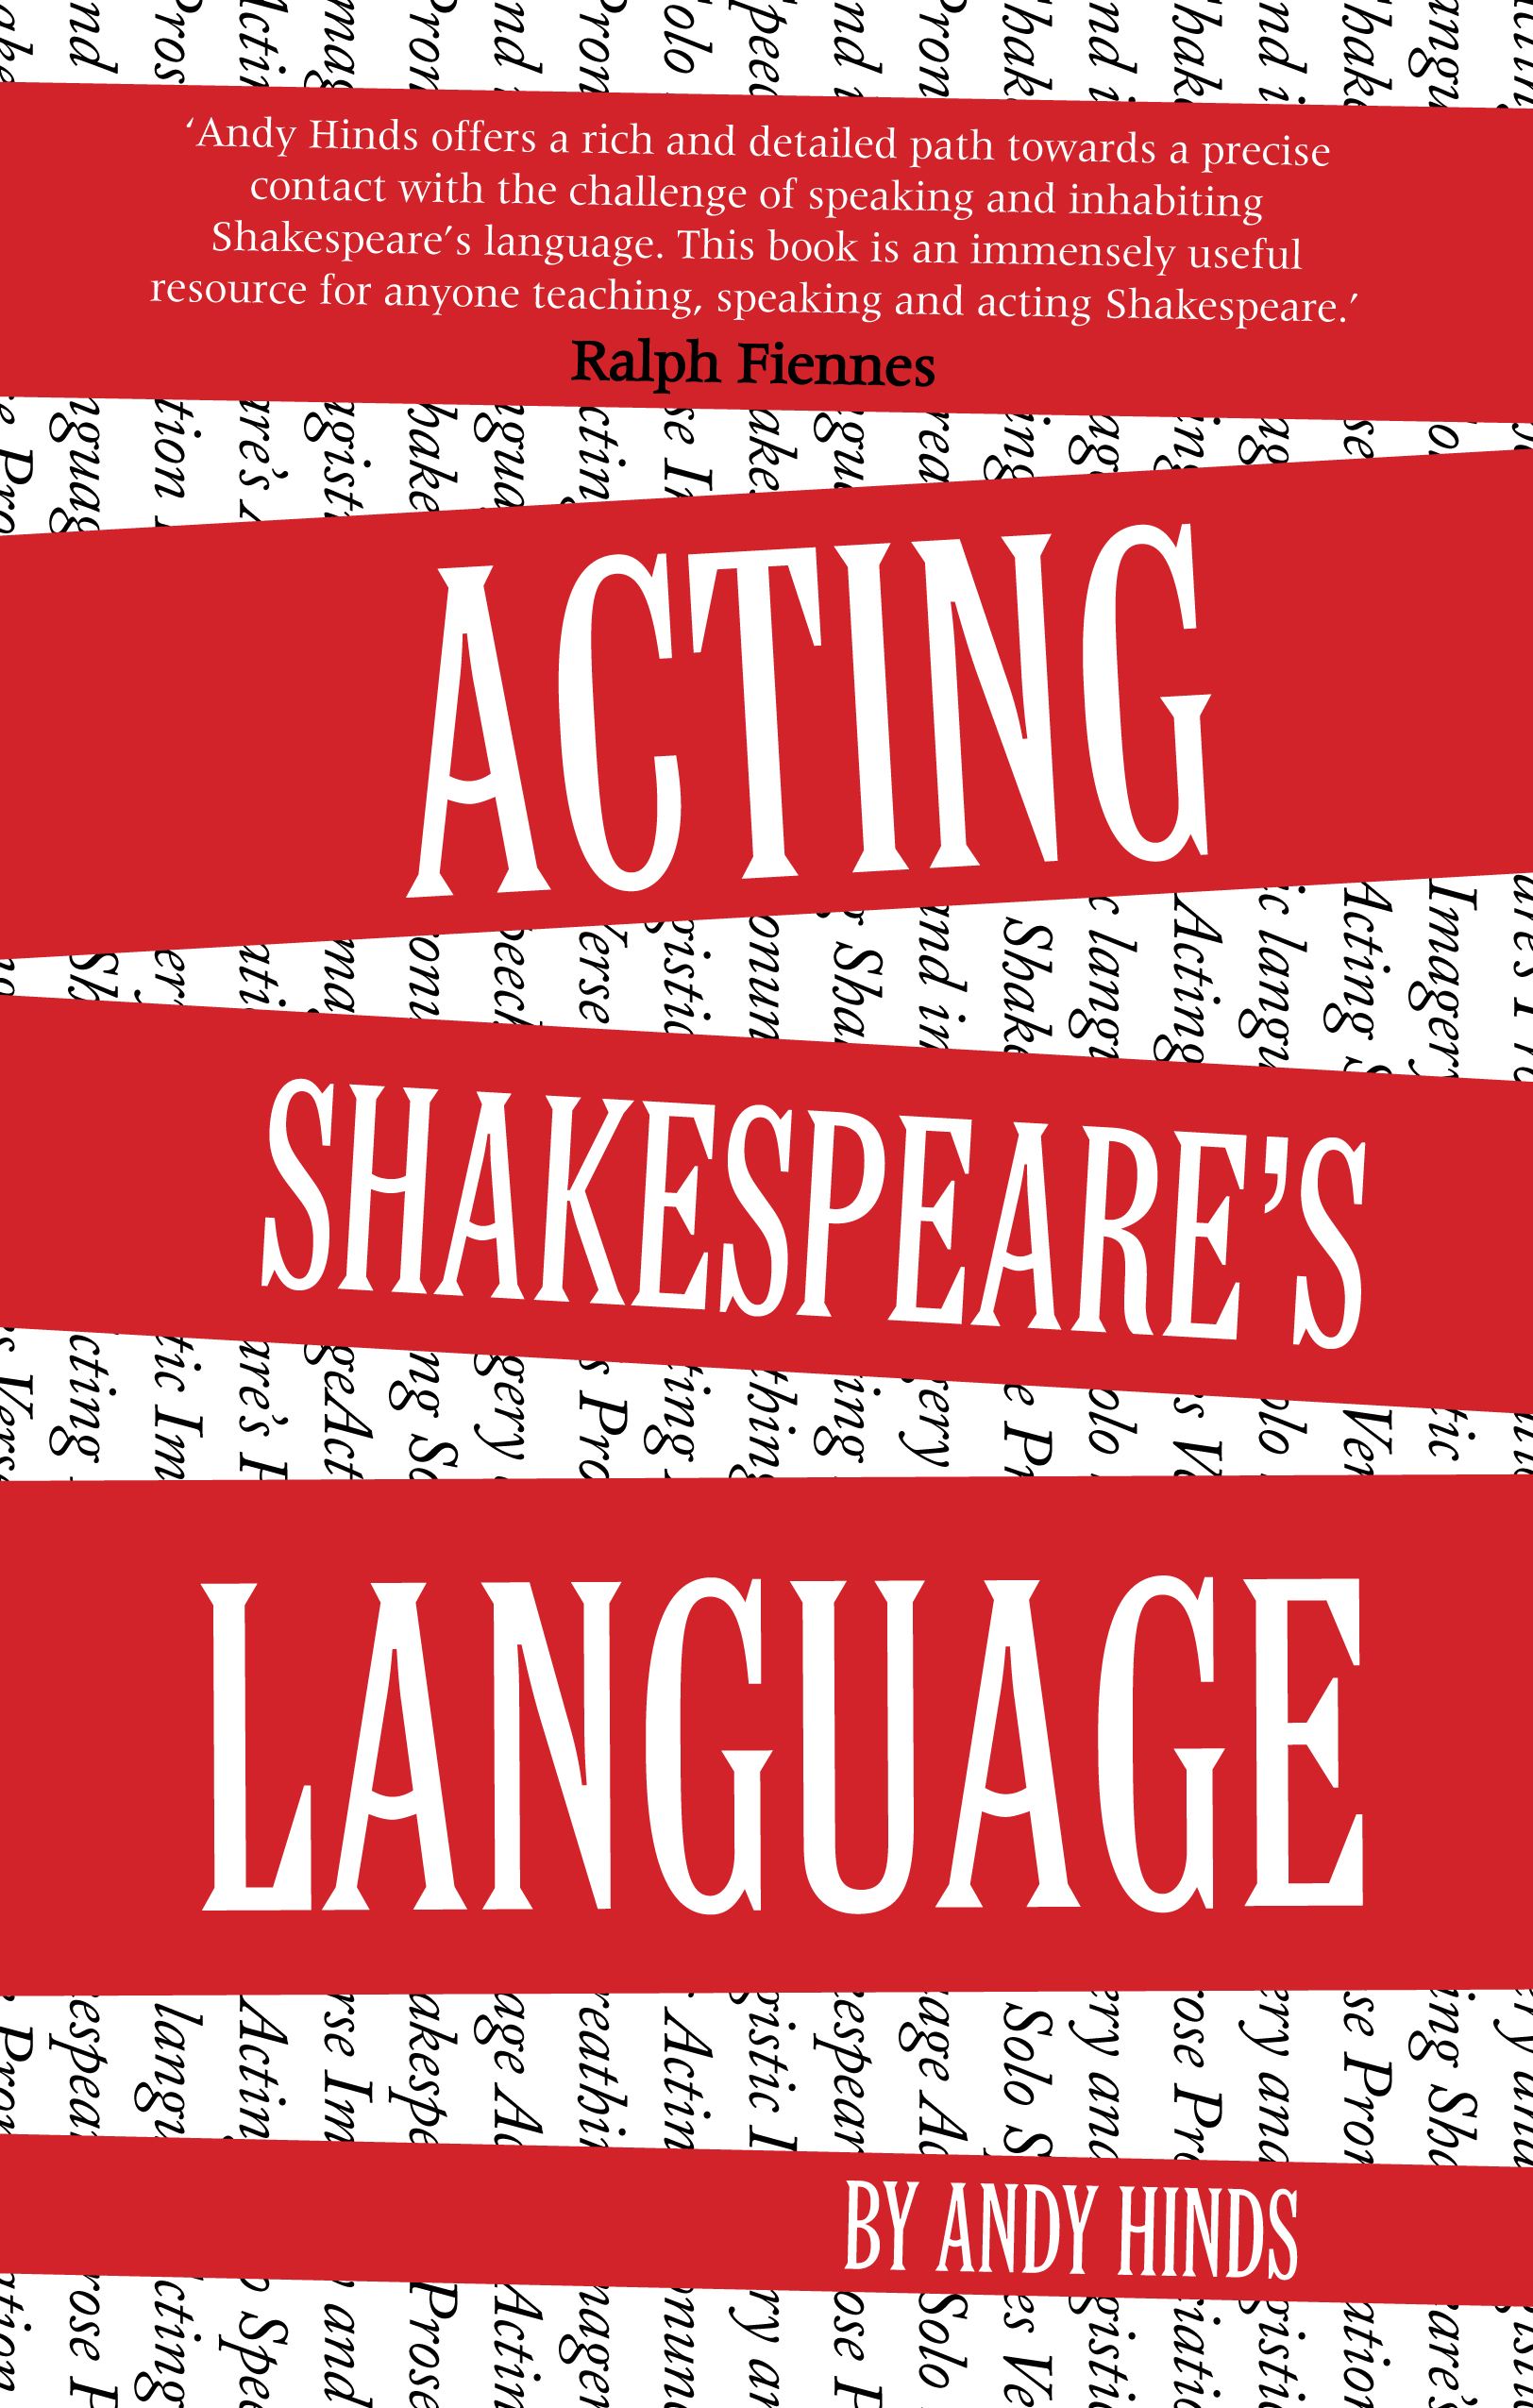 BOOK REVIEW: Acting Shakespeare's Language